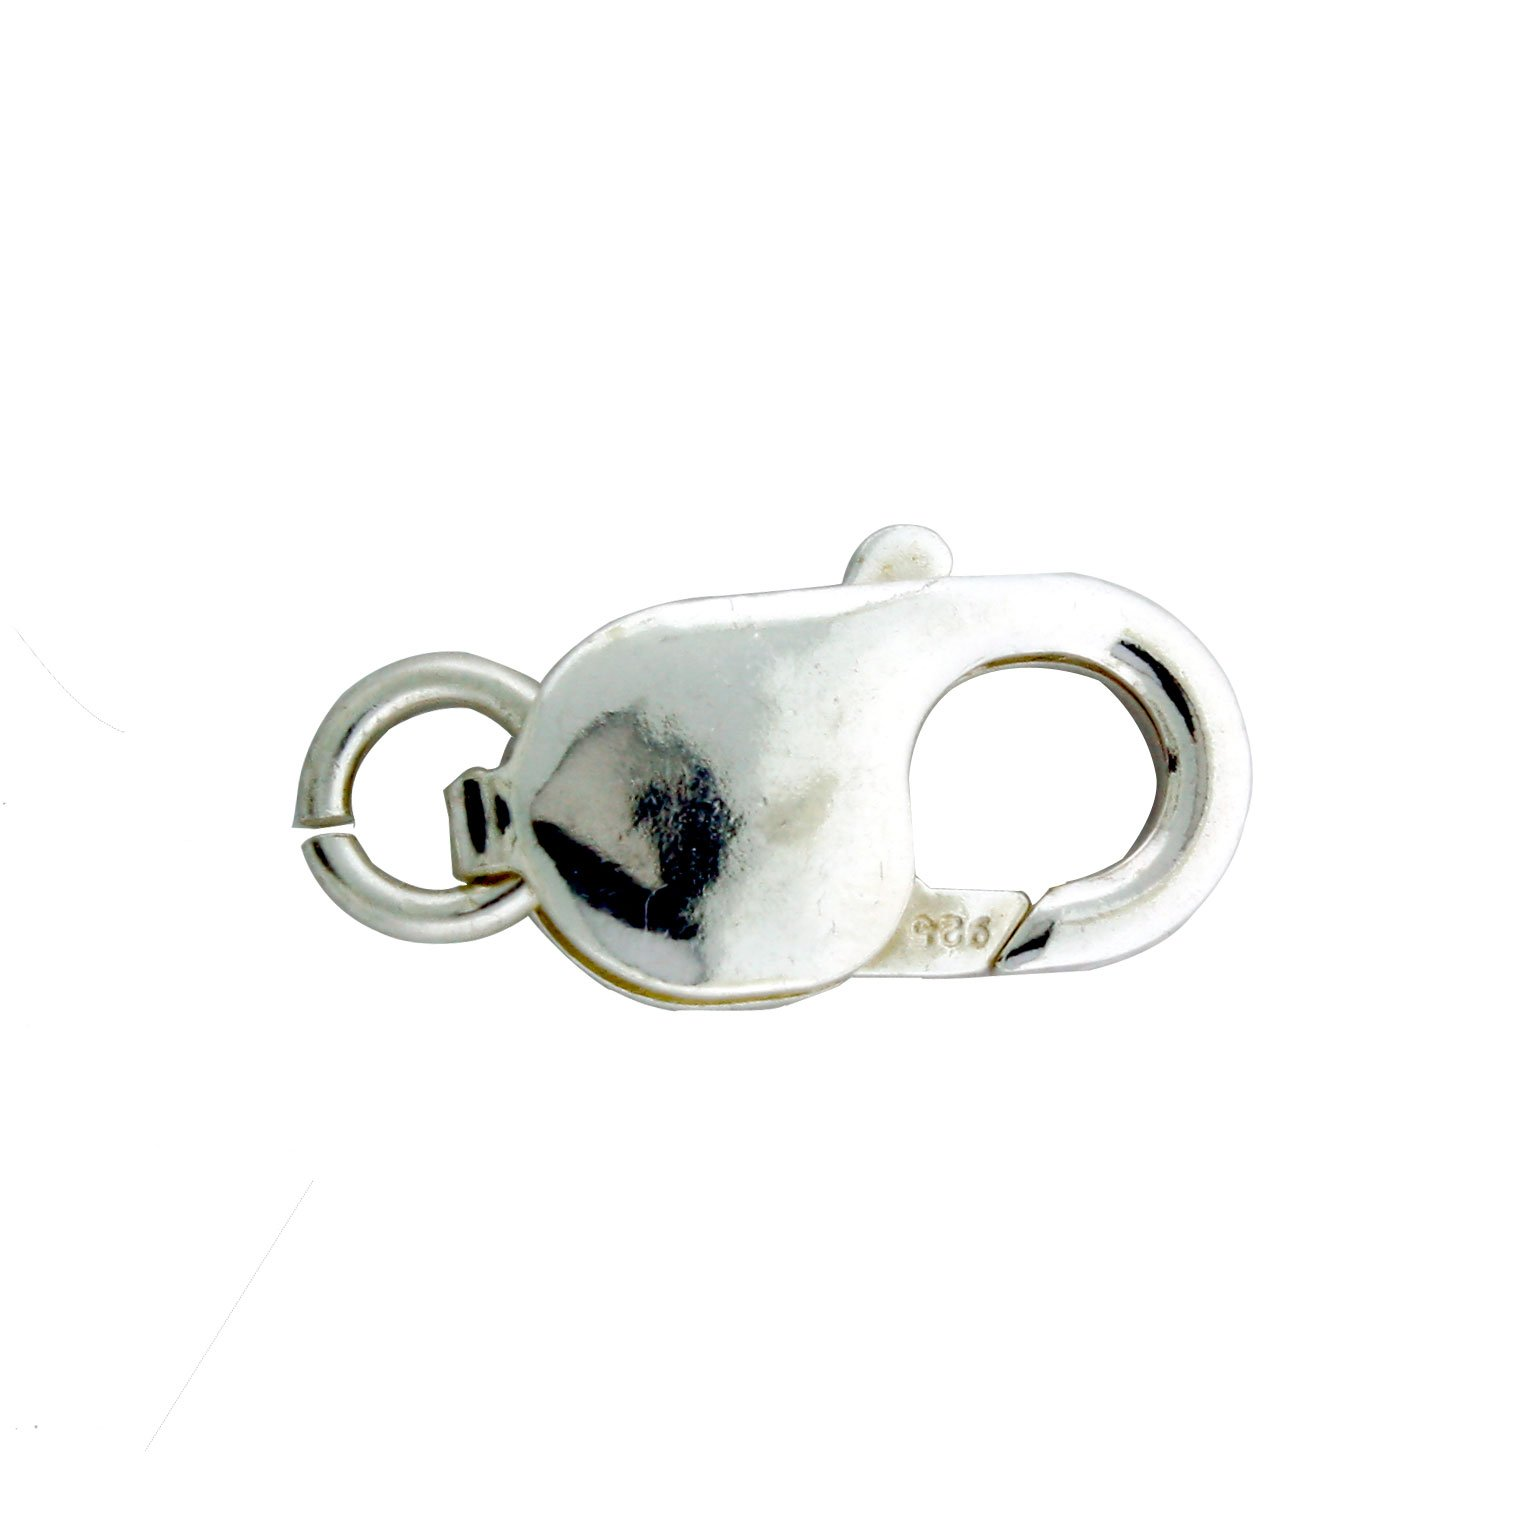 Sterling Silver Large Lobster Claw Clasp With Open Jump Ring, 9 x 18mm